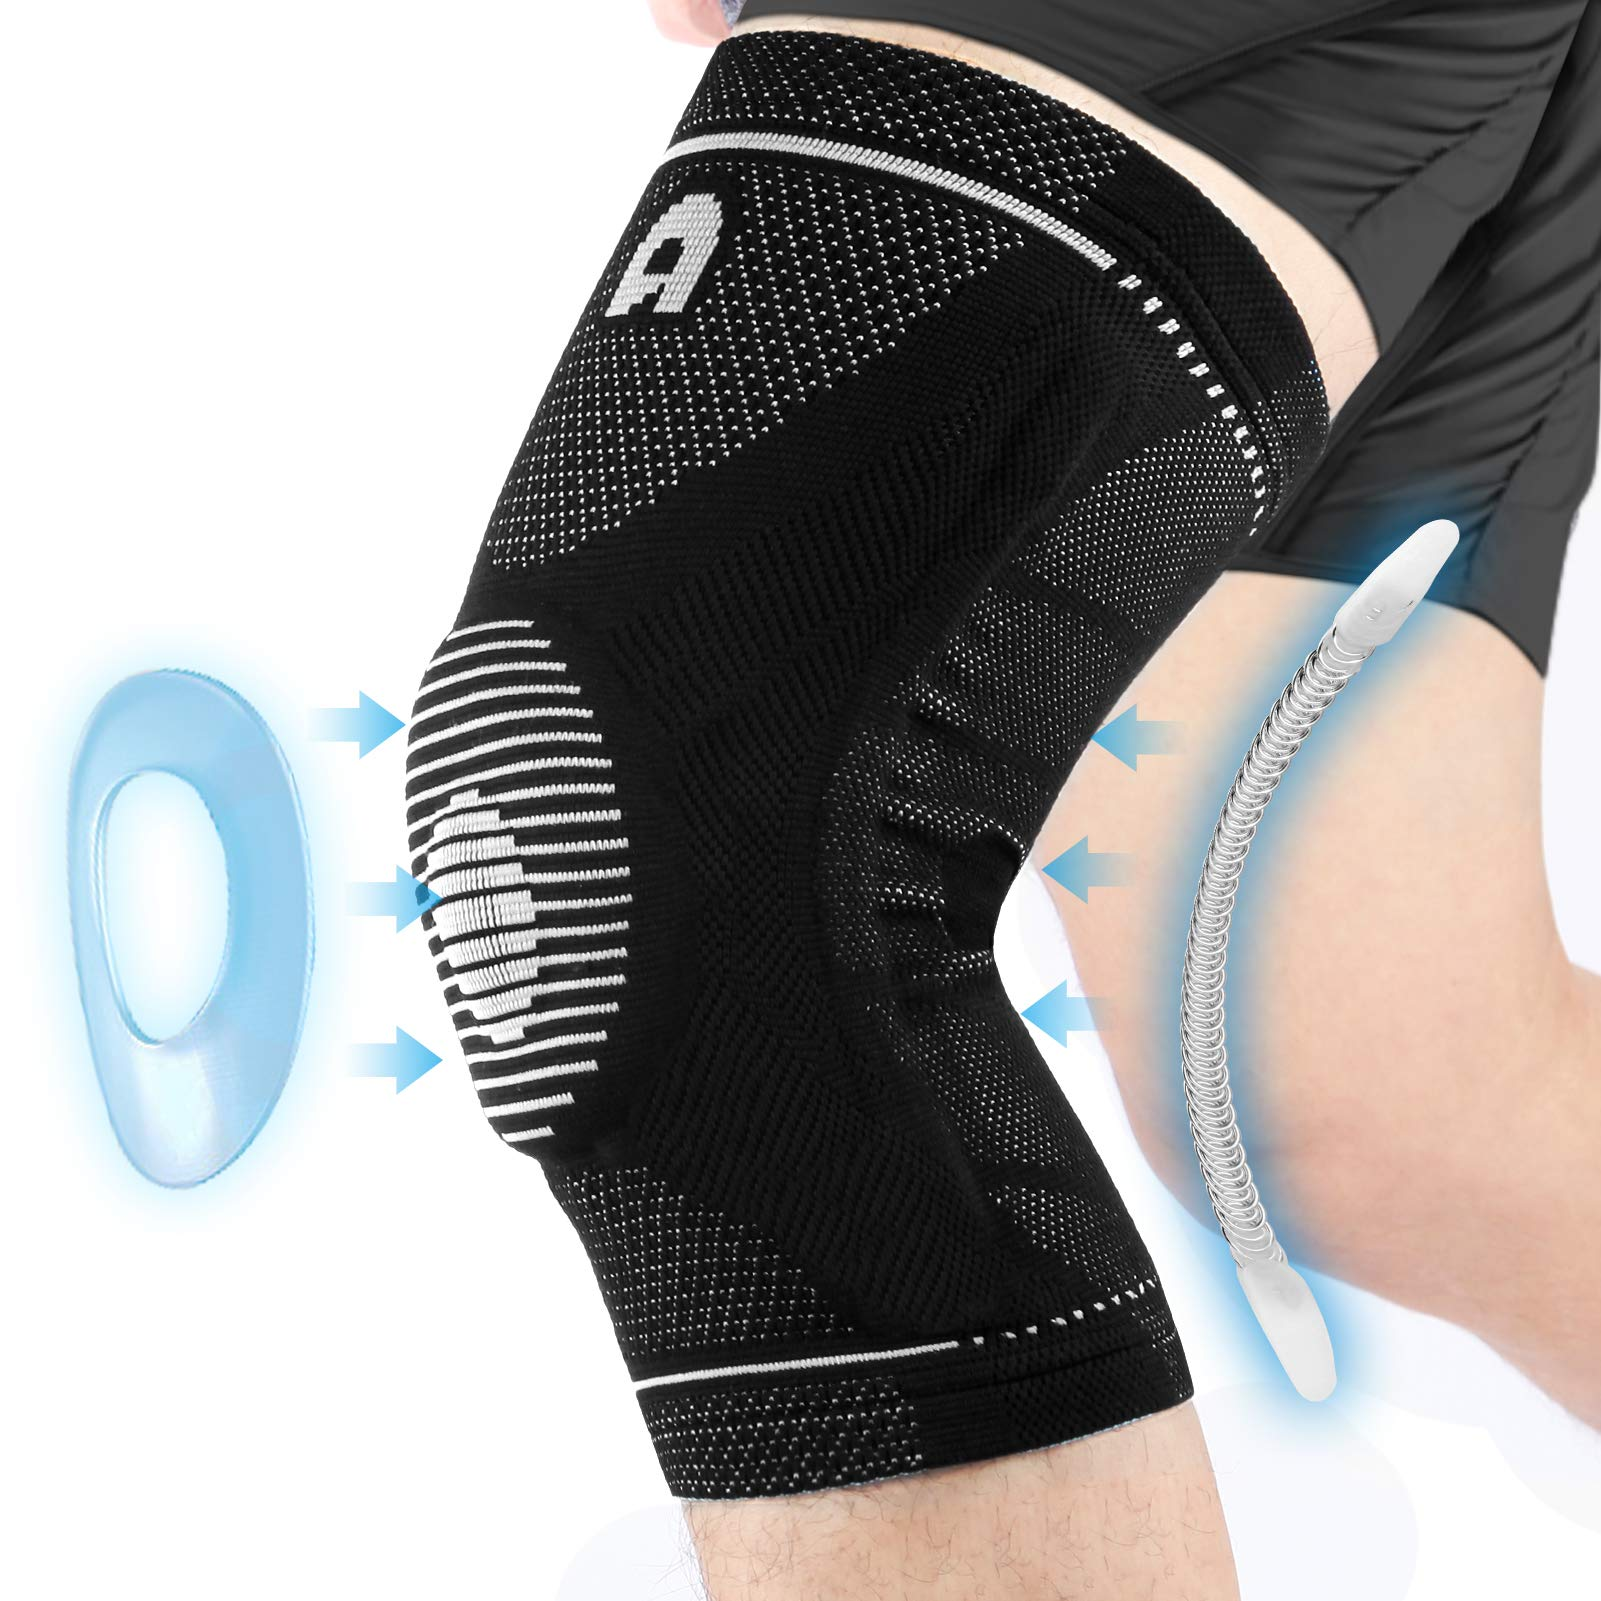 Professional Sports Knee Brace with Side Stabilizers, High Elasticity Knee Compression Sleeves For Men Women, Knee Protection Breathable and Non-slip For Running, Basketball, Working out, Arthritis